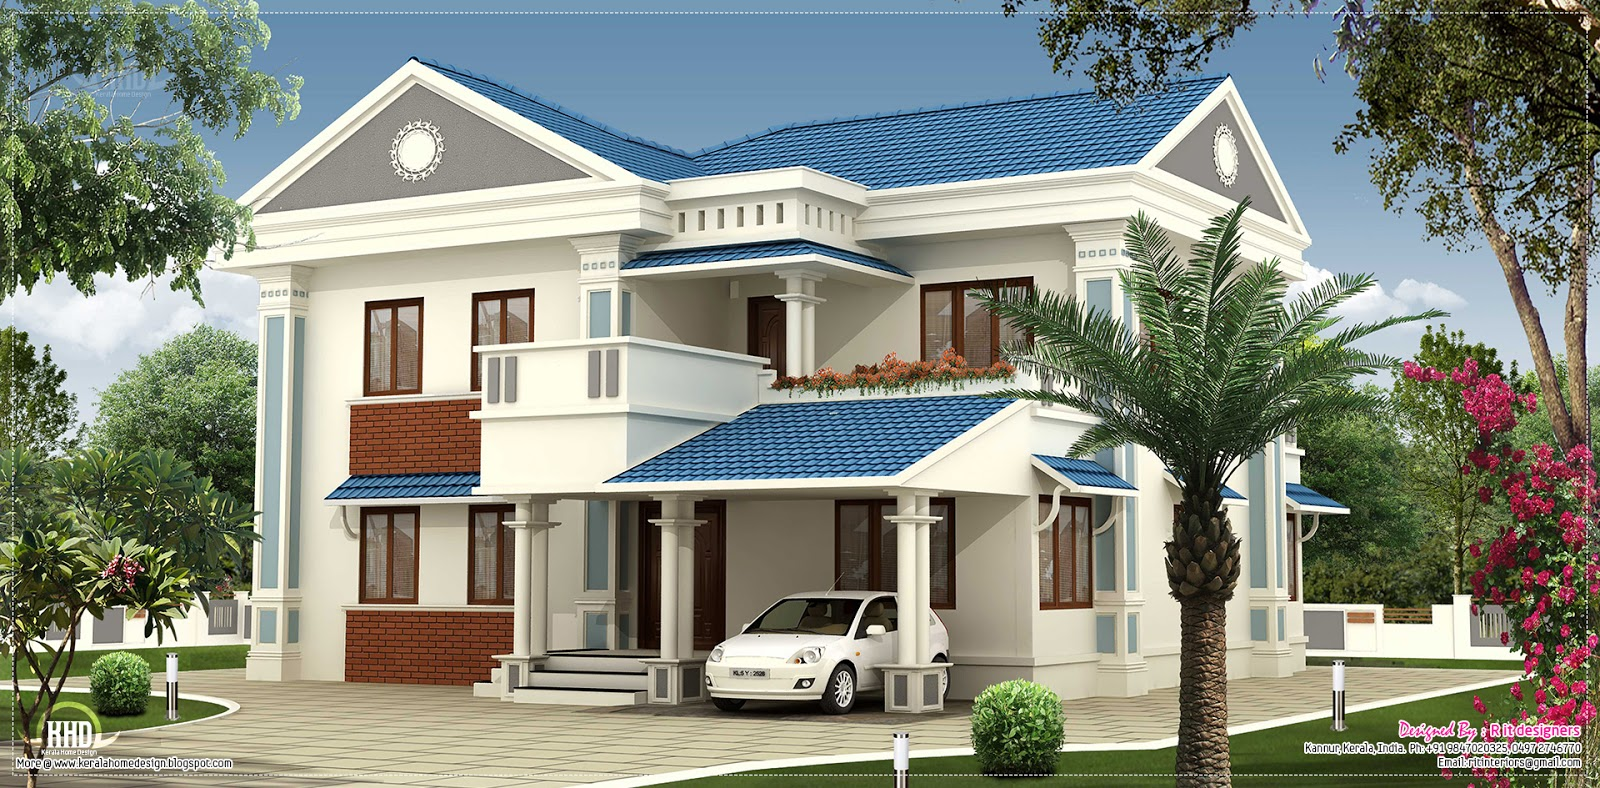 2000 beautiful villa elevation design kerala home design and floor plans - Nice house designs ...